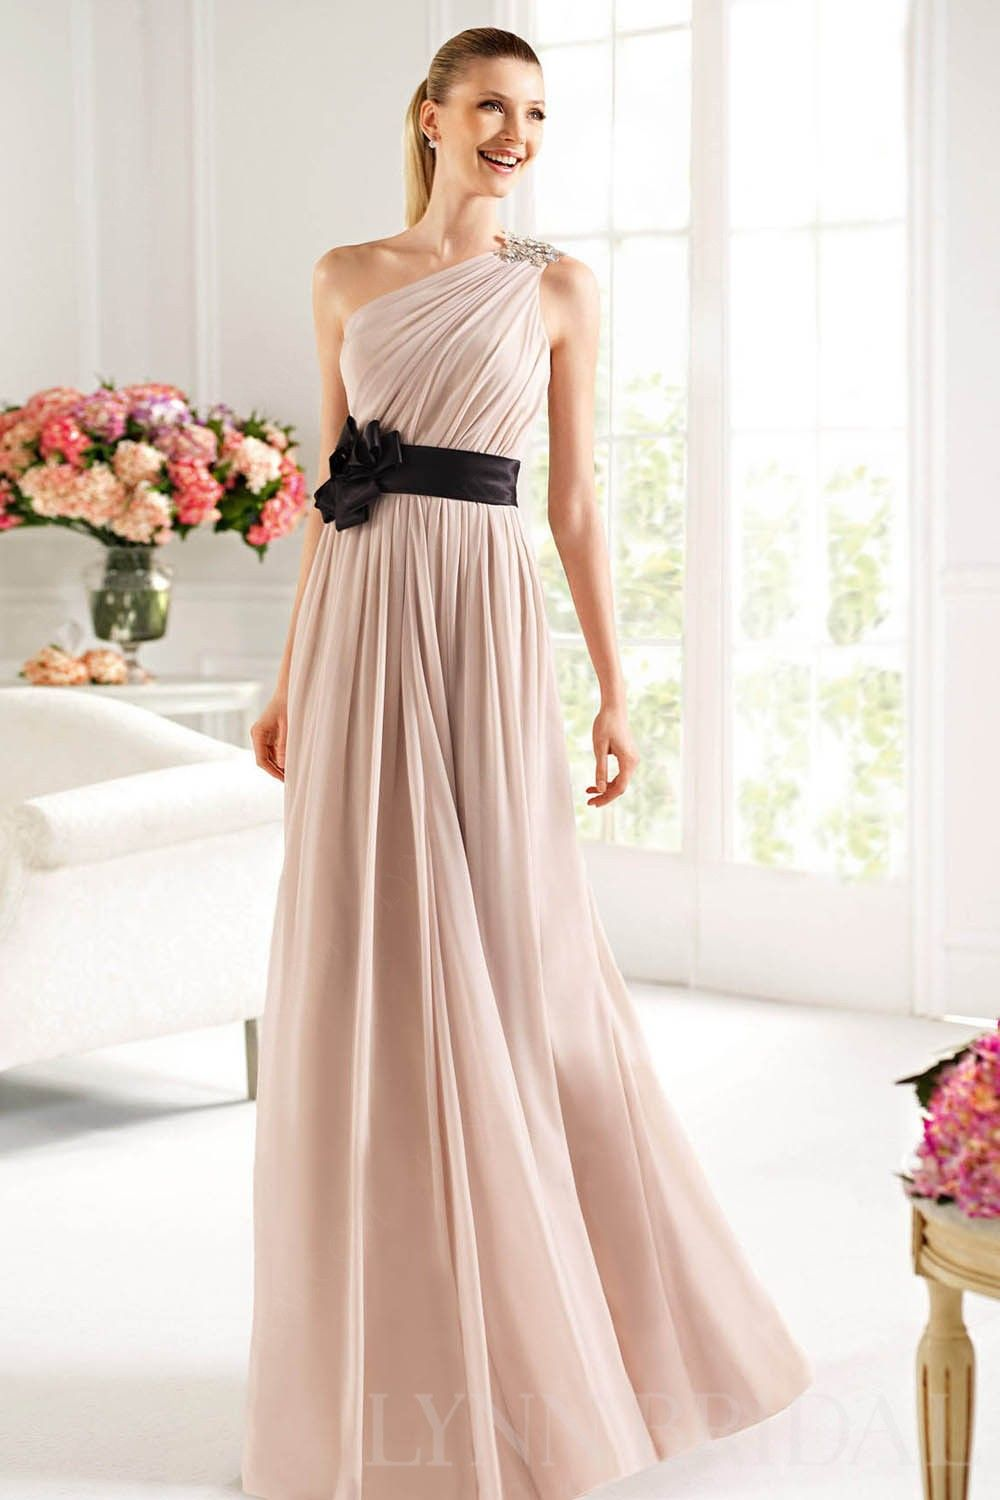 Draped one shoulder chiffon long bridesmaid dress with black ribbon